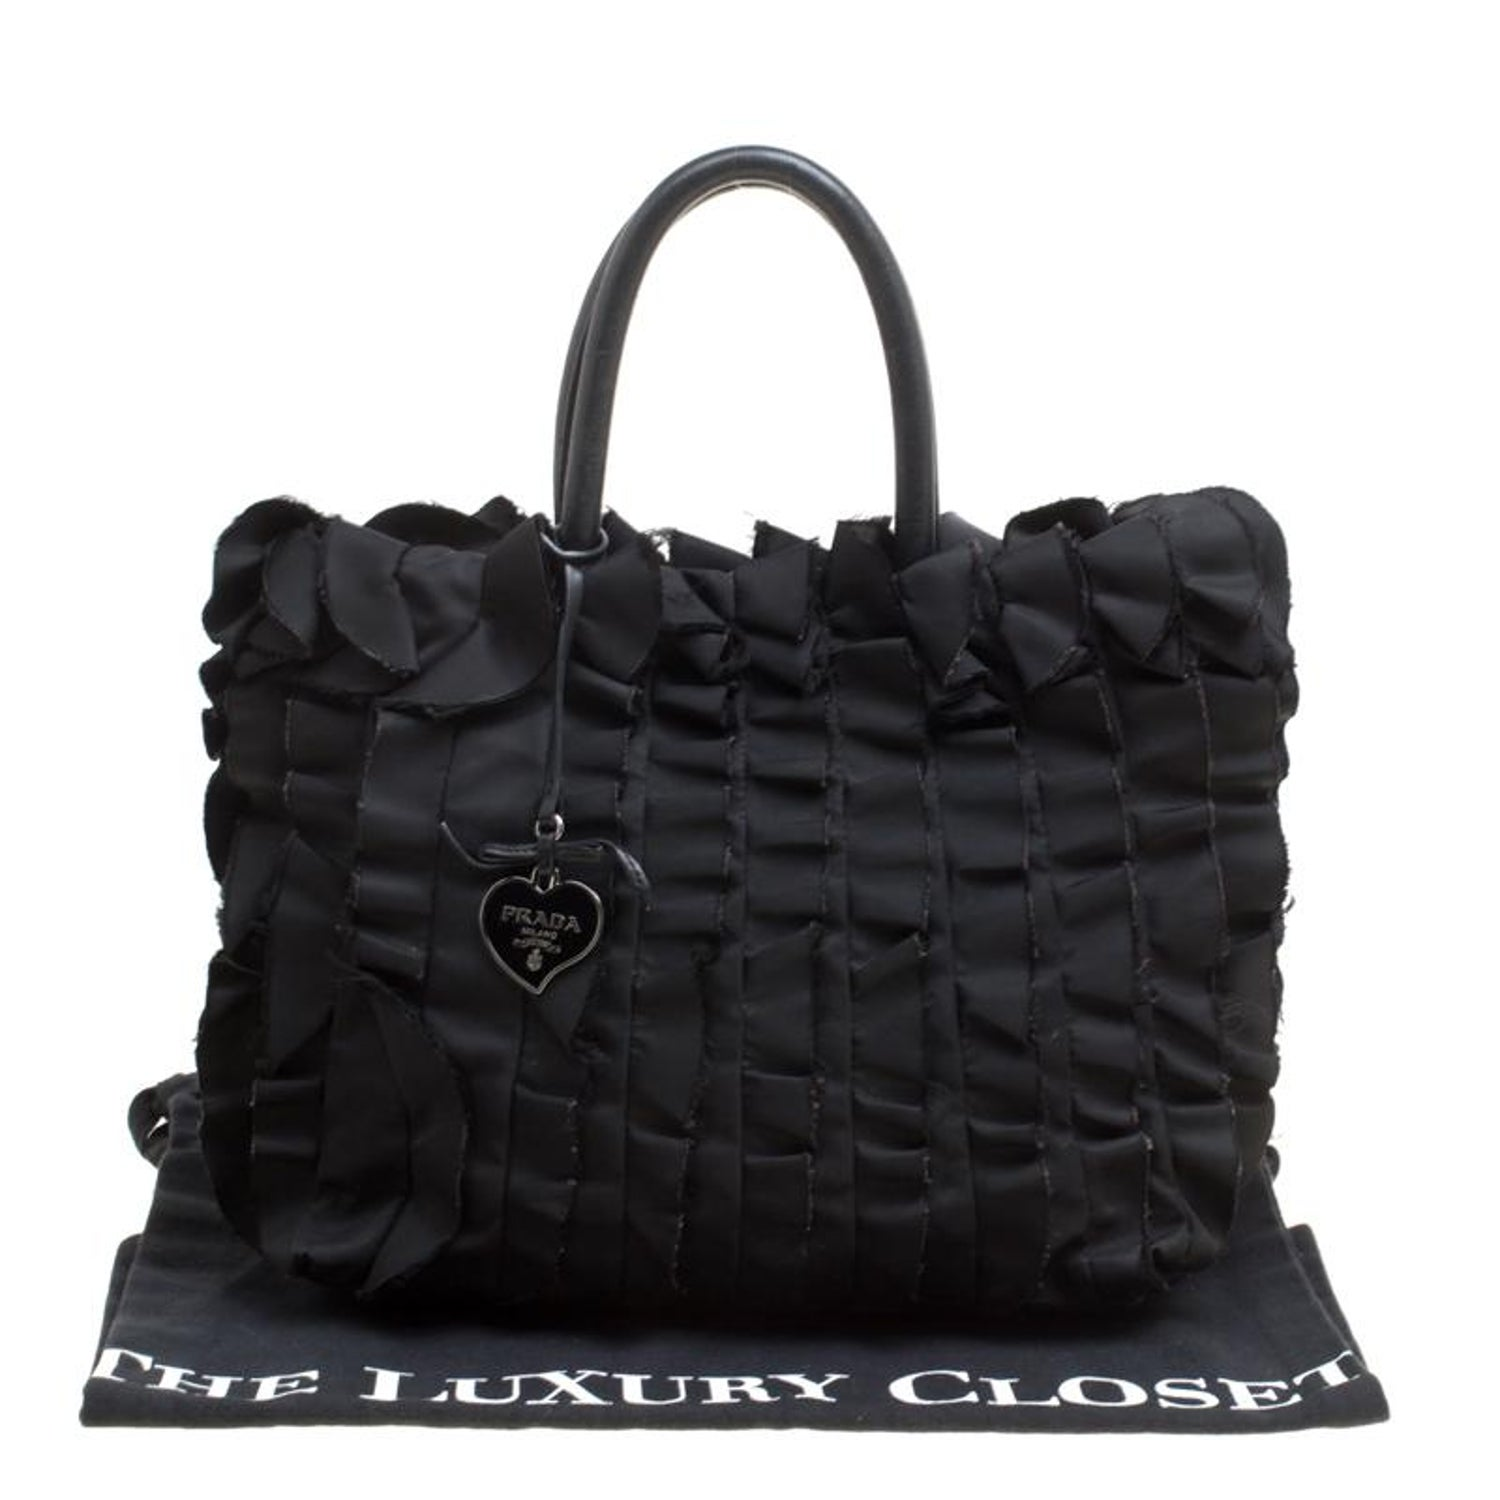 6e21b0713eb7 Prada Black Nylon Ruffle Tote For Sale at 1stdibs